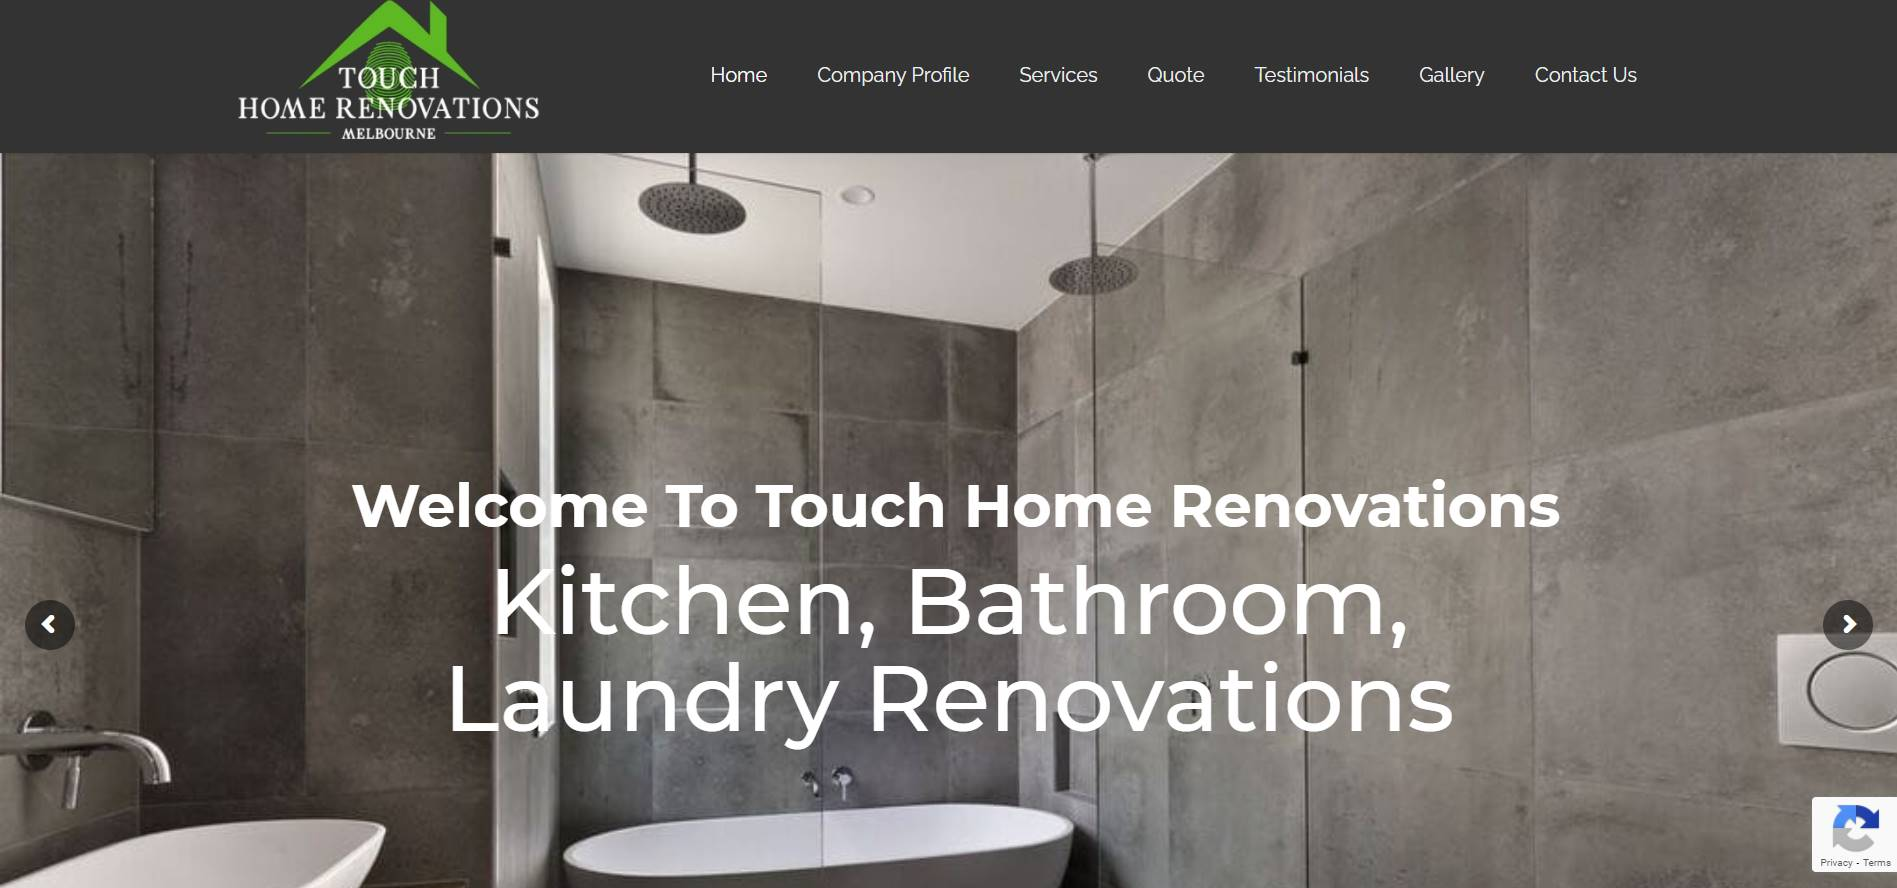 touch home renovations